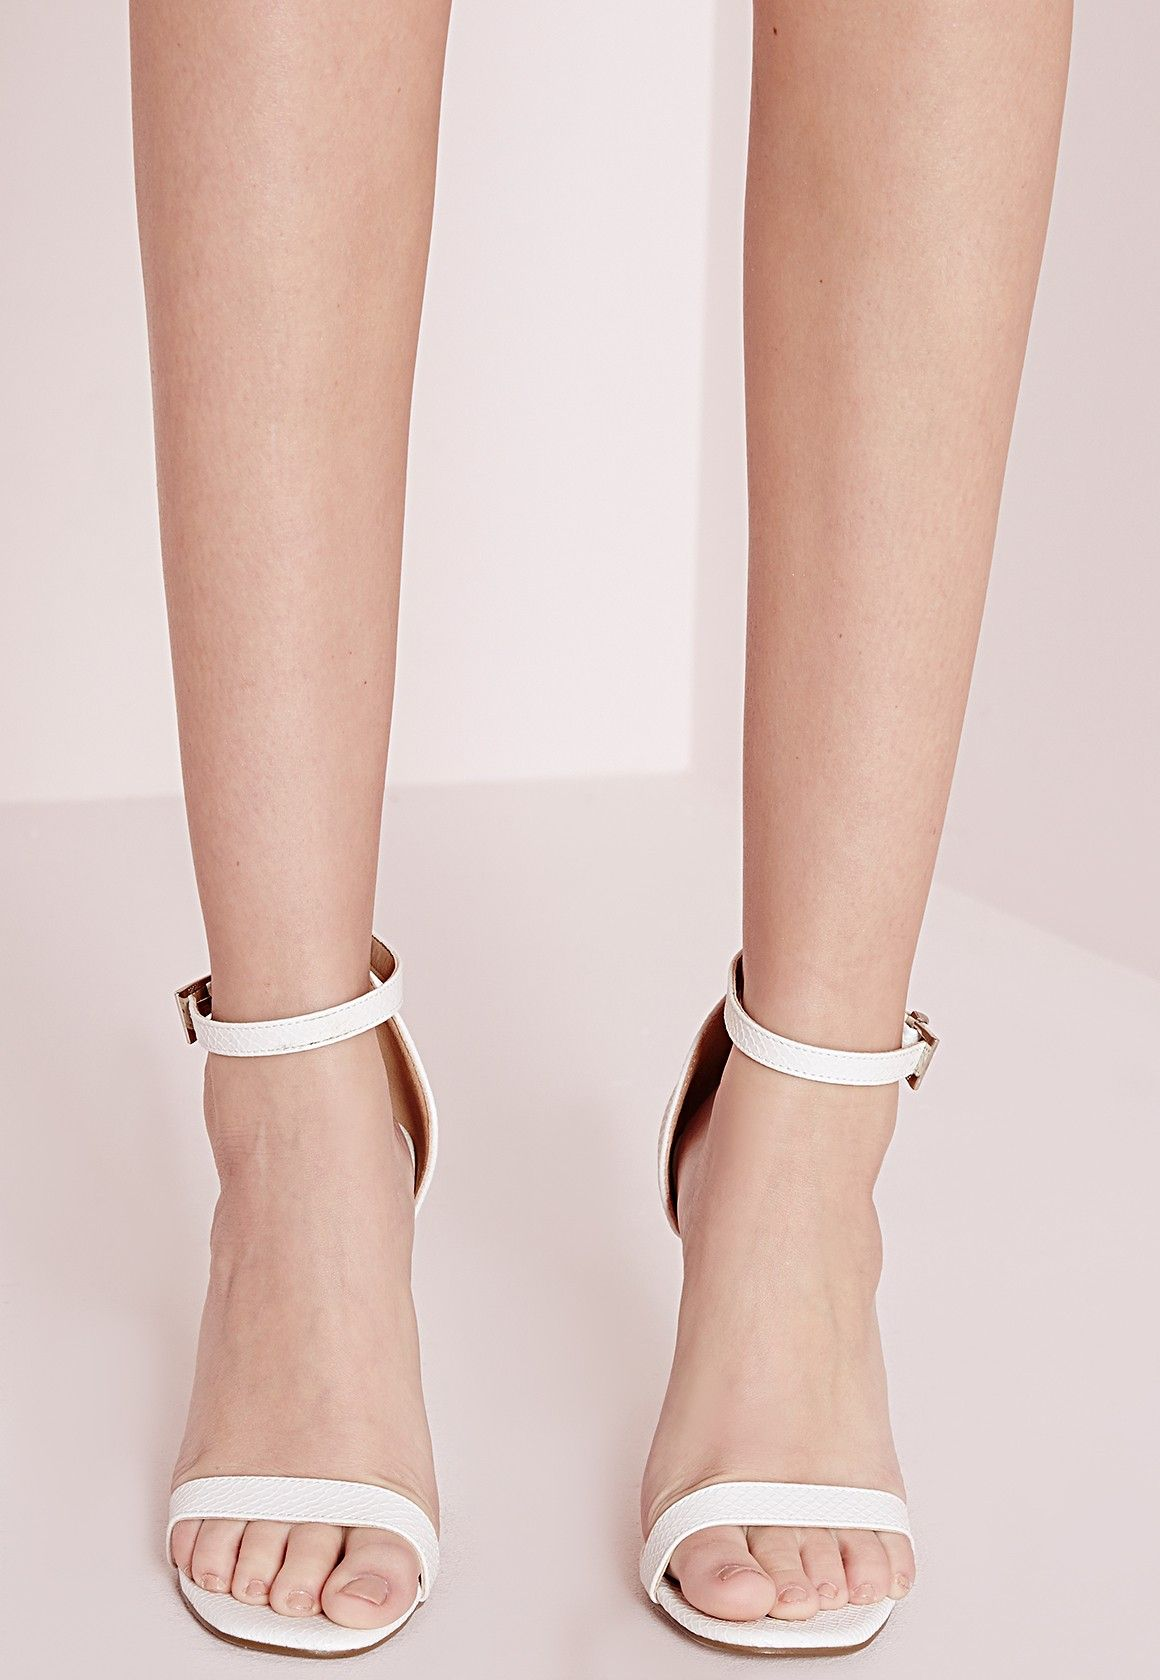 b8f8b737f87024 Missguided - Barely There Strappy Heeled Sandals White Croc